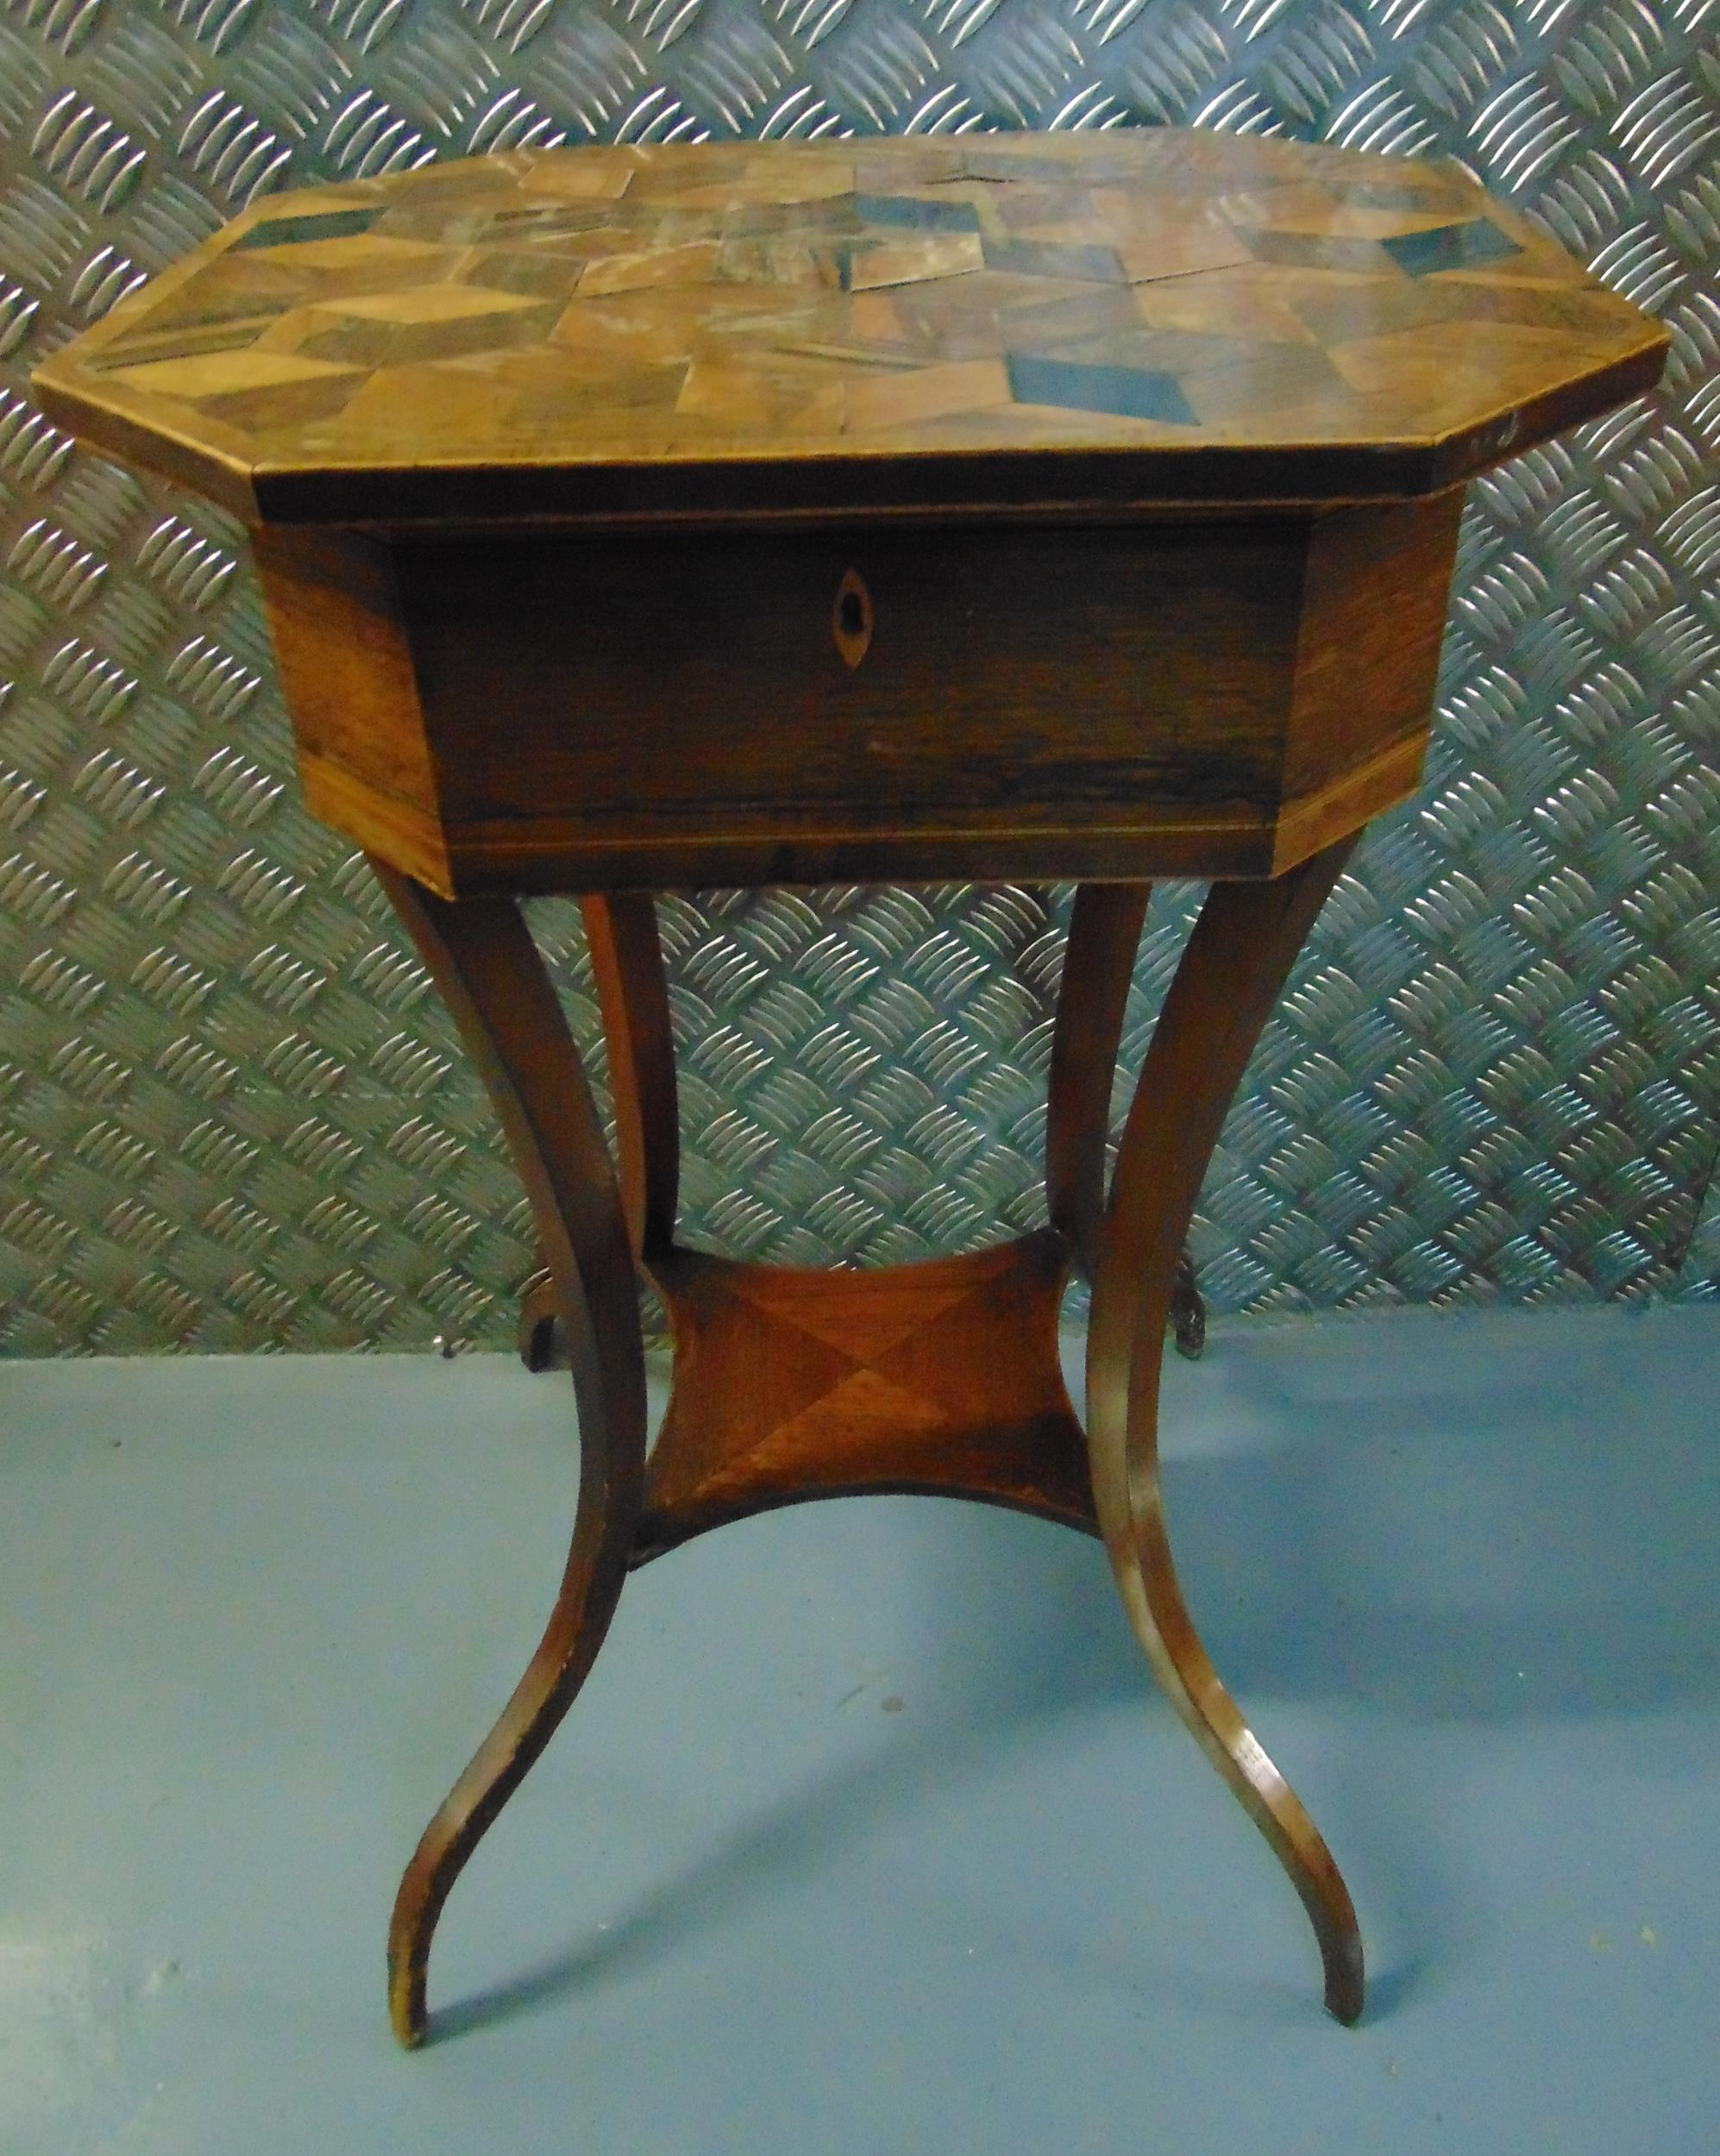 A mahogany inlaid needlework table of elongated octagonal form the hinged cover revealing a lined